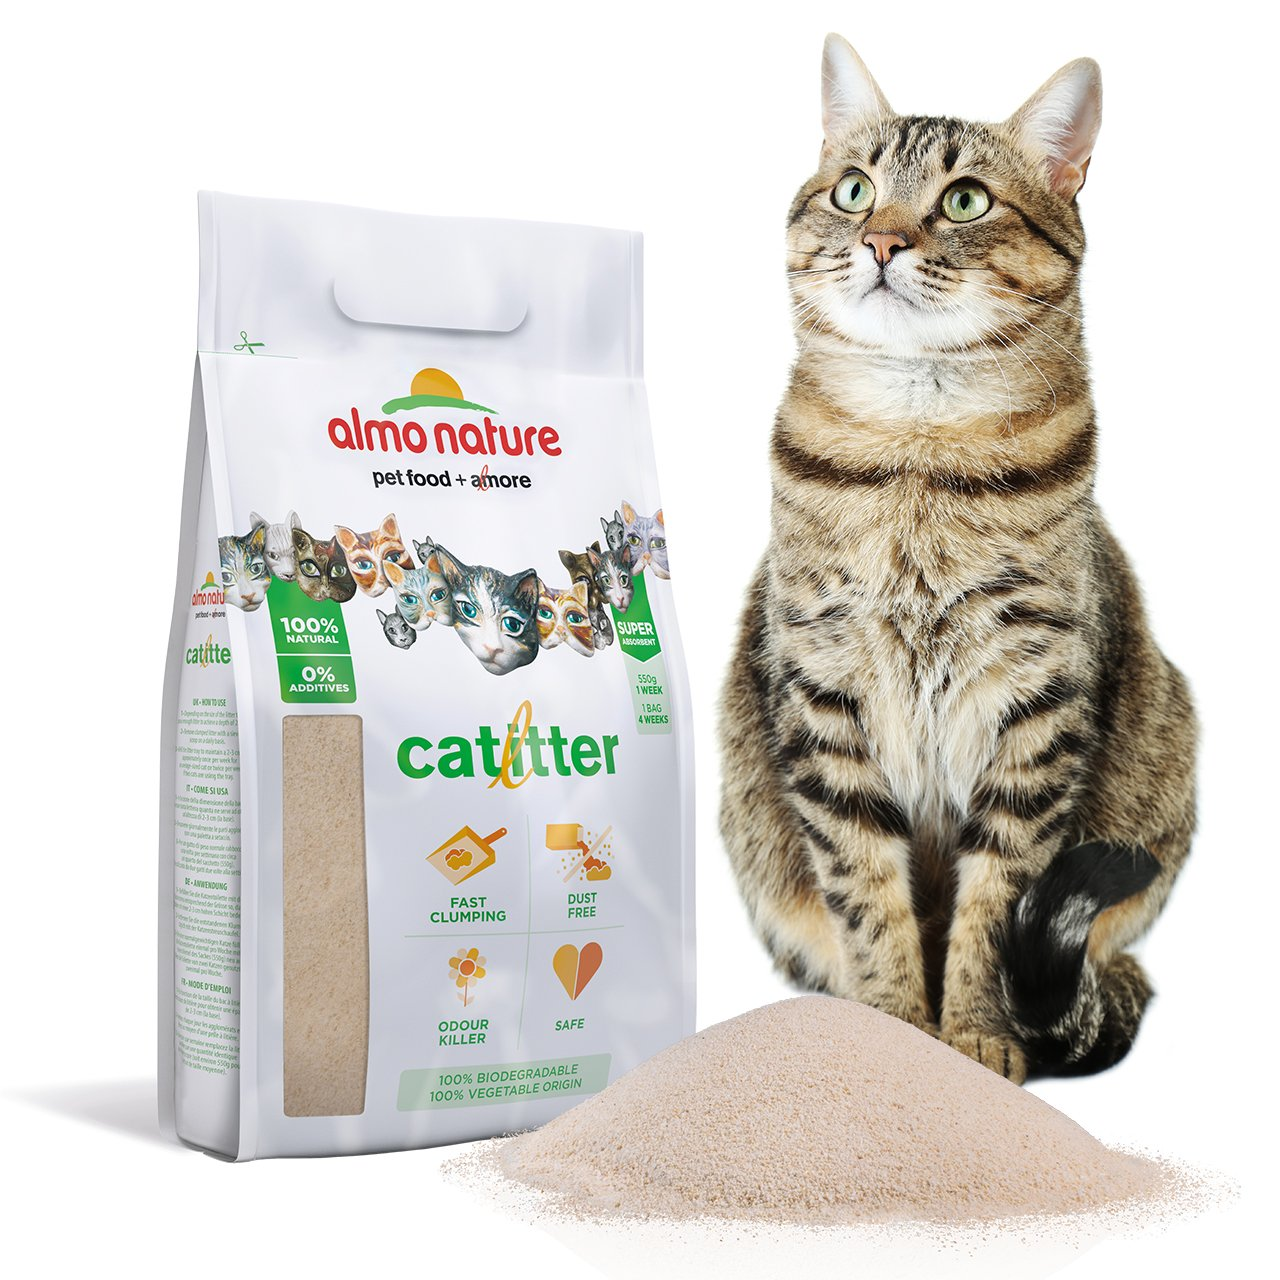 Almo nature ALM76 Cat Litter Arena Aglomerante para Gatos, 2.27 kg: Amazon.es: Productos para mascotas